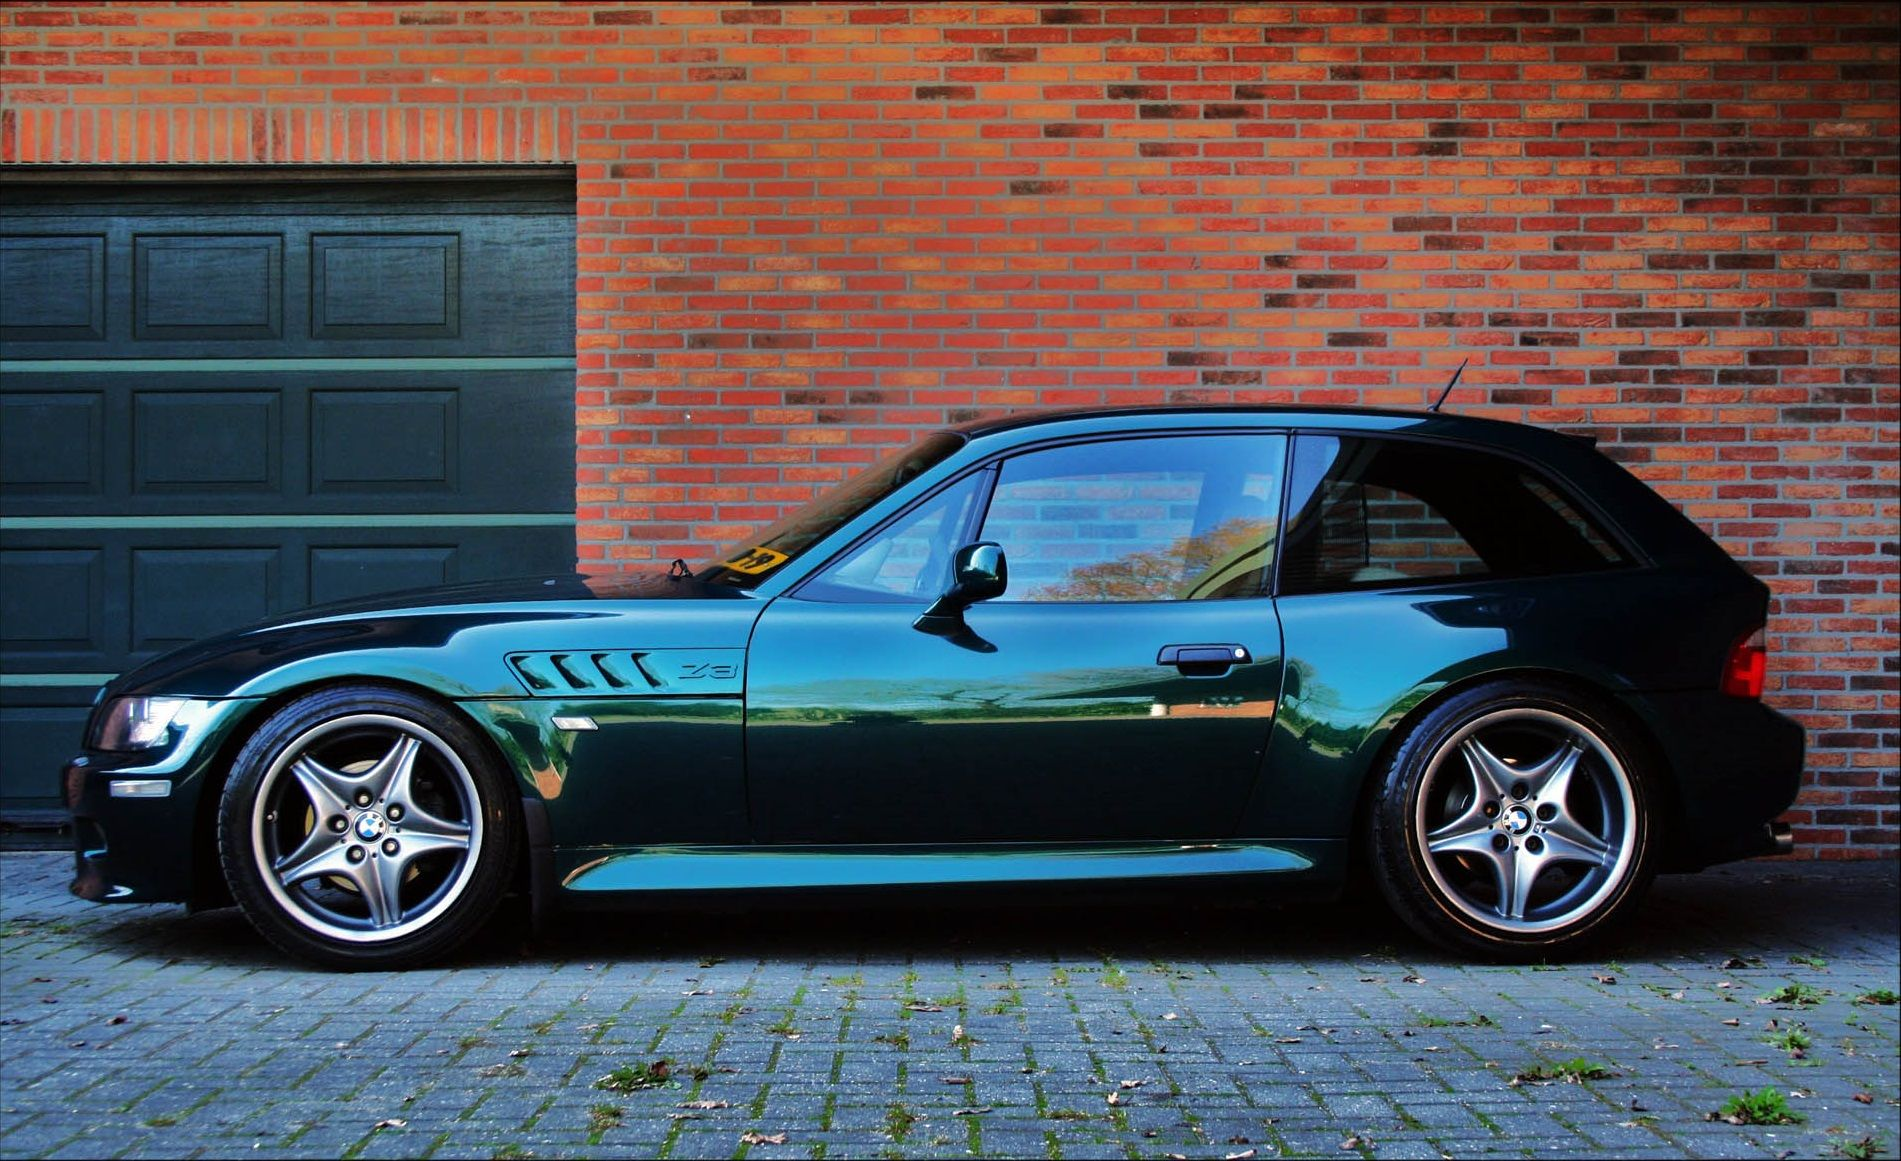 Bmw Z3 Coupe Oxford Green Cars Pinterest Bmw Z3 Coupe And Bmw